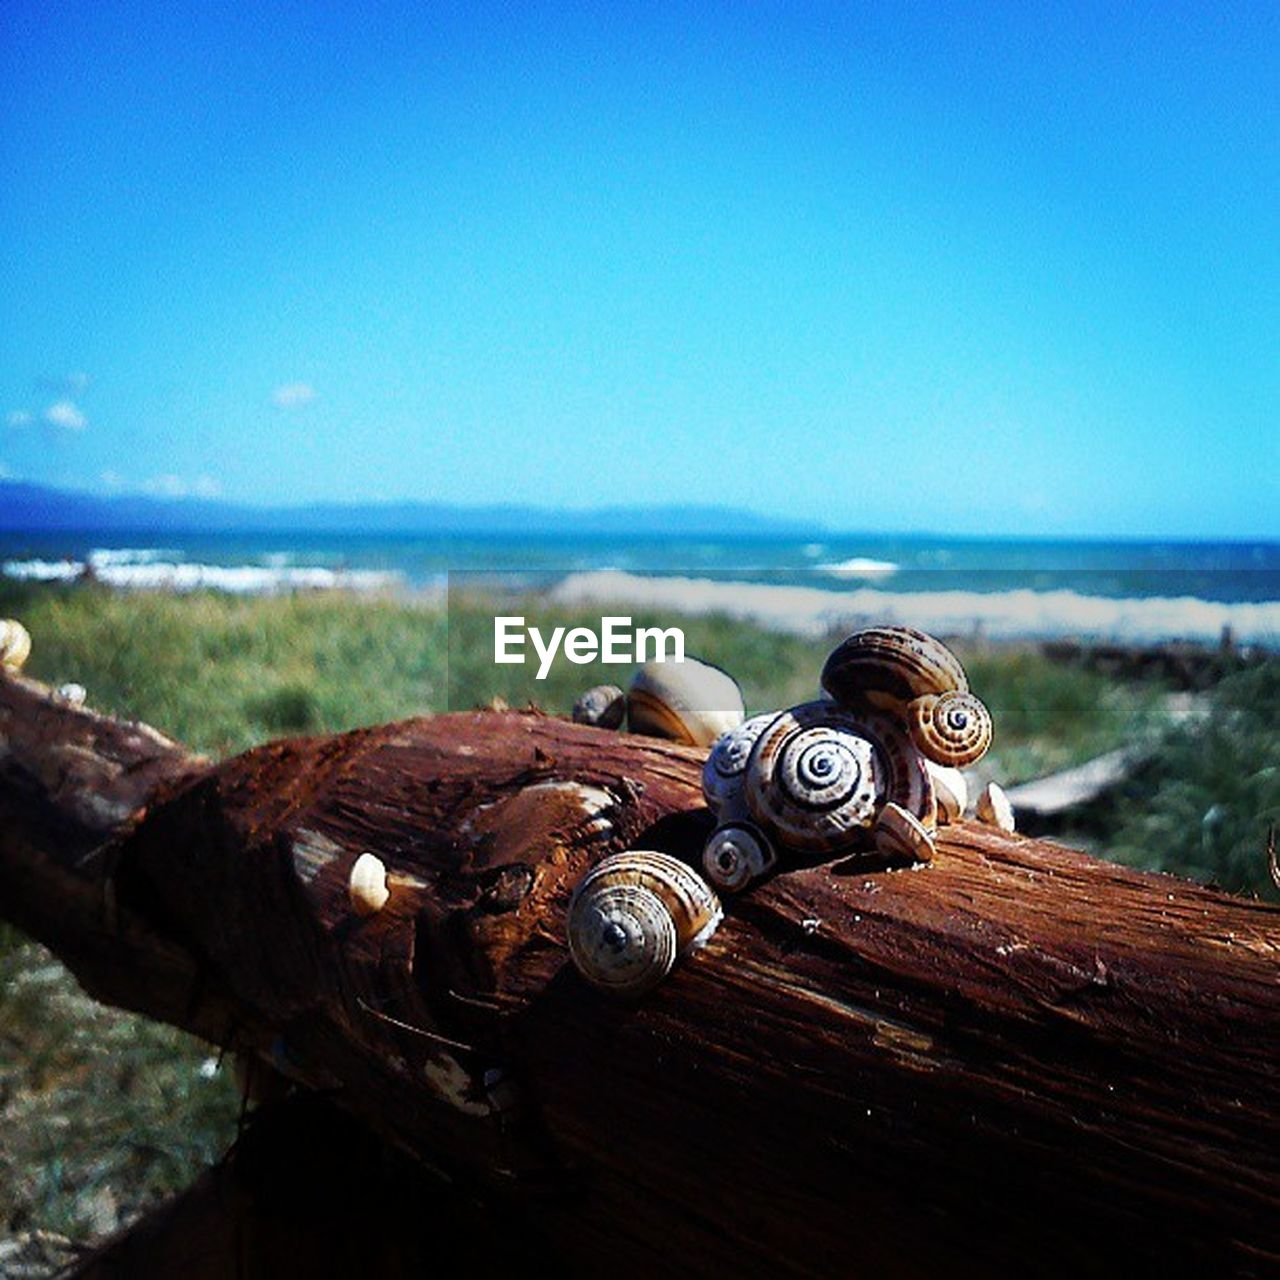 sea, water, no people, rusty, horizon over water, metal, beach, close-up, outdoors, day, nature, blue, sky, clear sky, animal themes